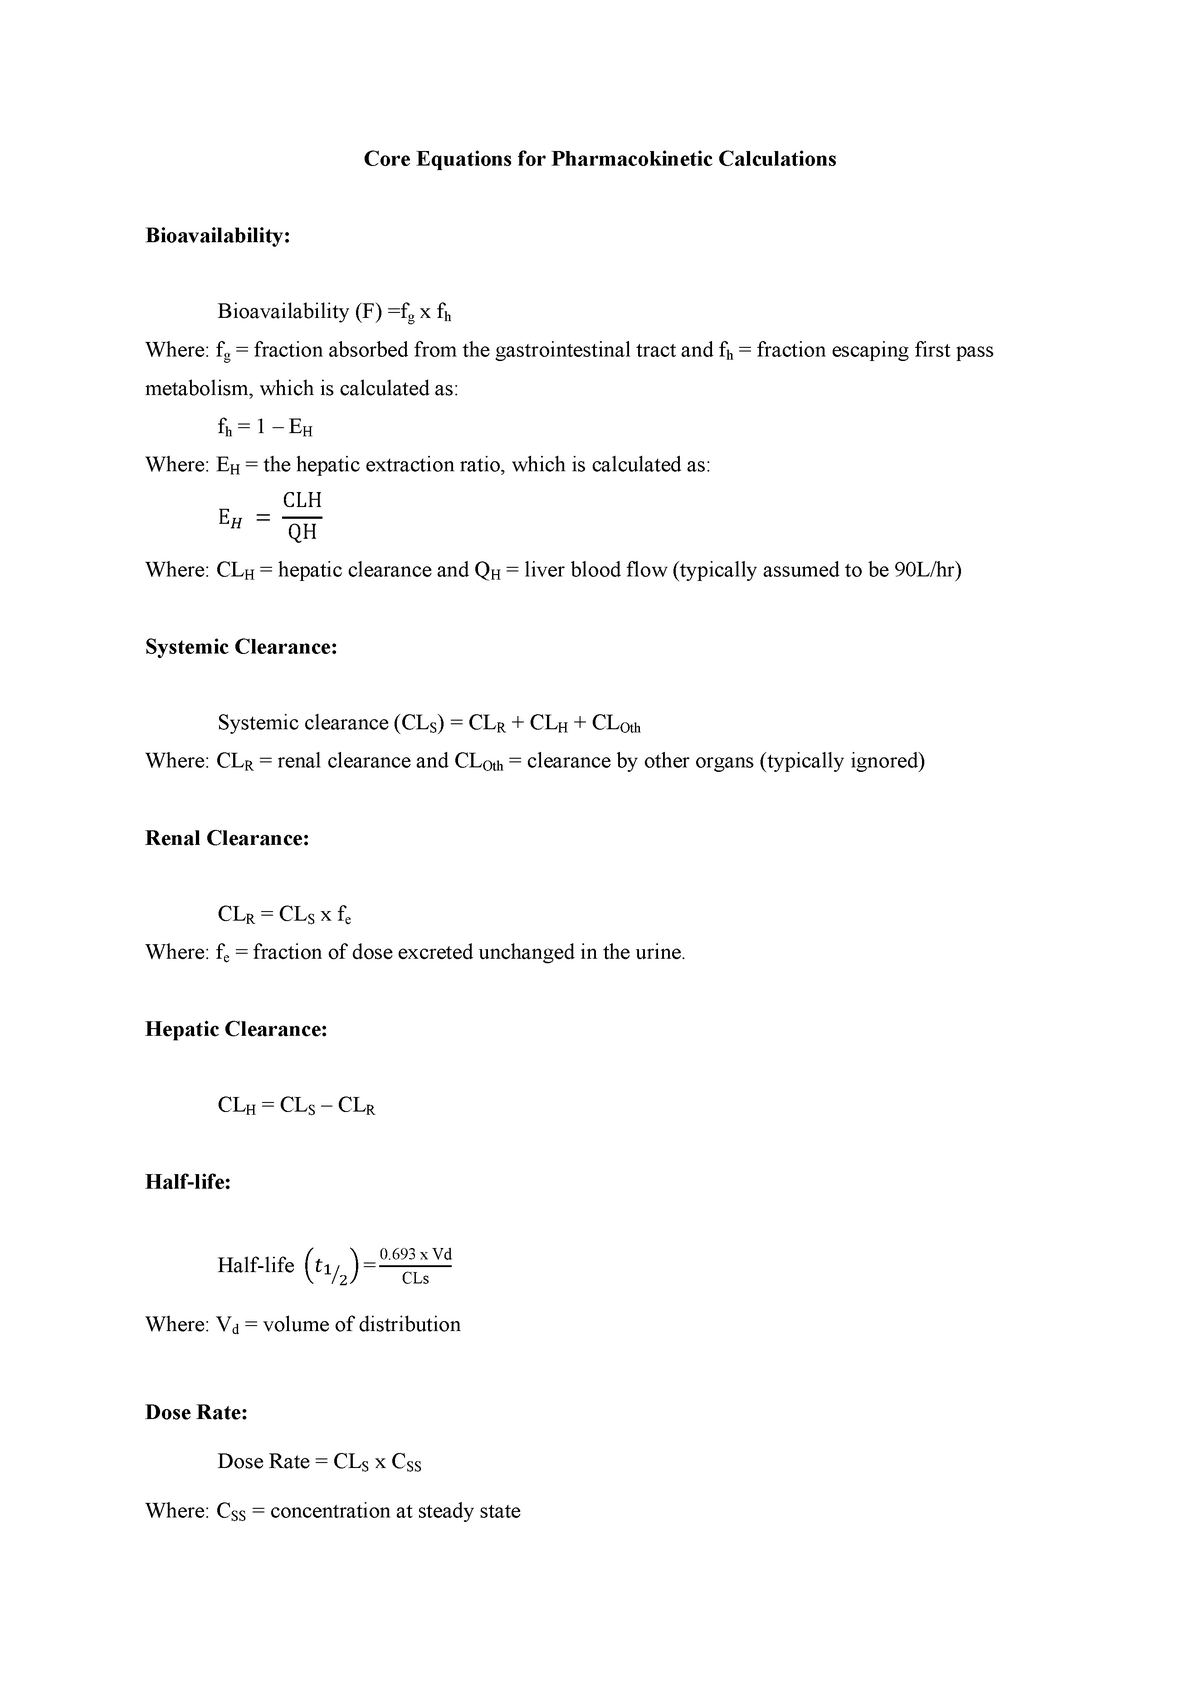 Core Equations For Pharmacokinetic Calculations Mmed9110 Studocu